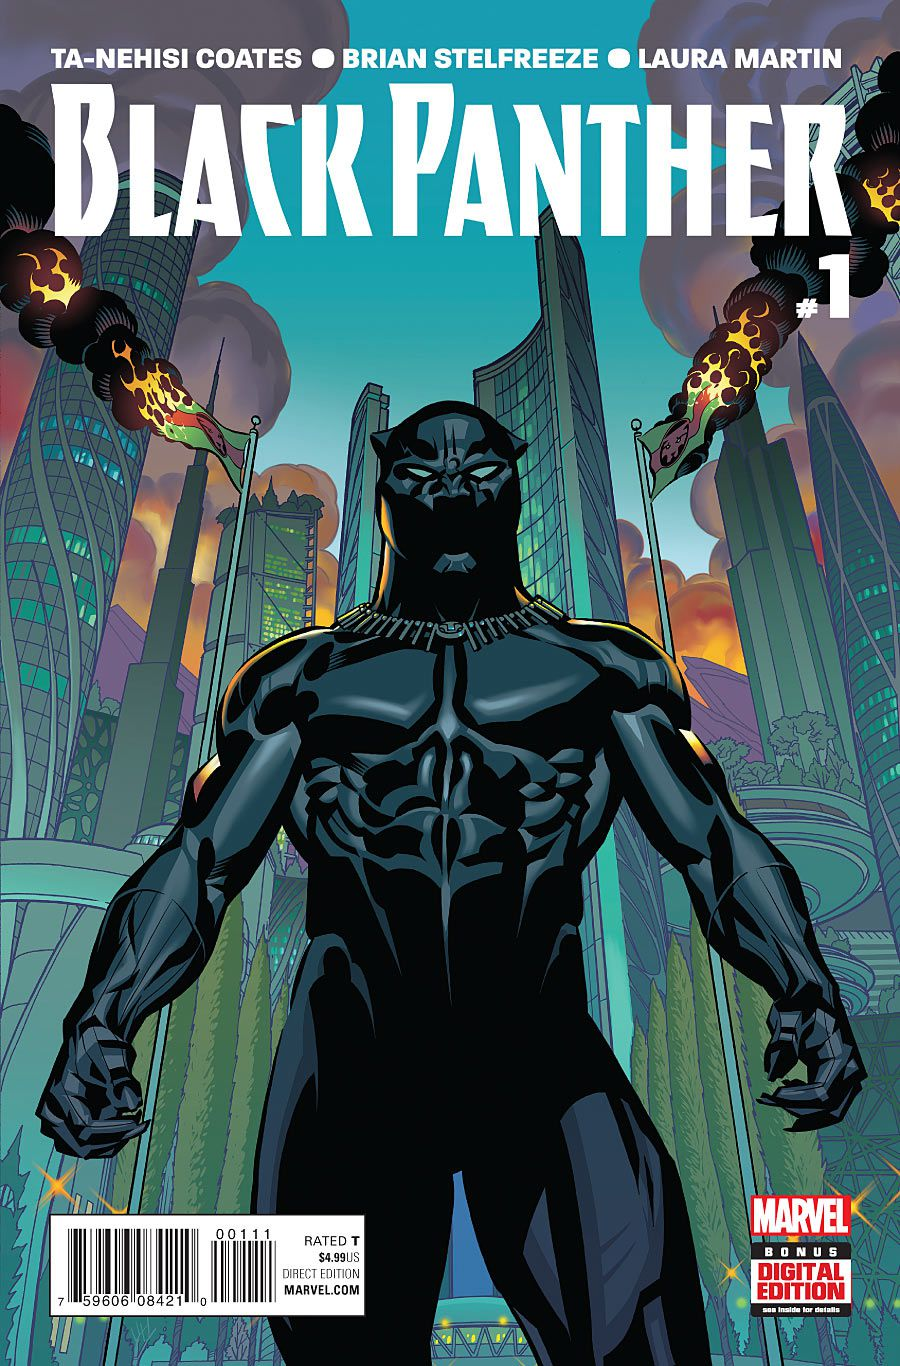 T'Challa stands in costume before two burning Wakandan flags in the capital of Wakanda, on the cover of Black Panther #1, Marvel Comics (2016).